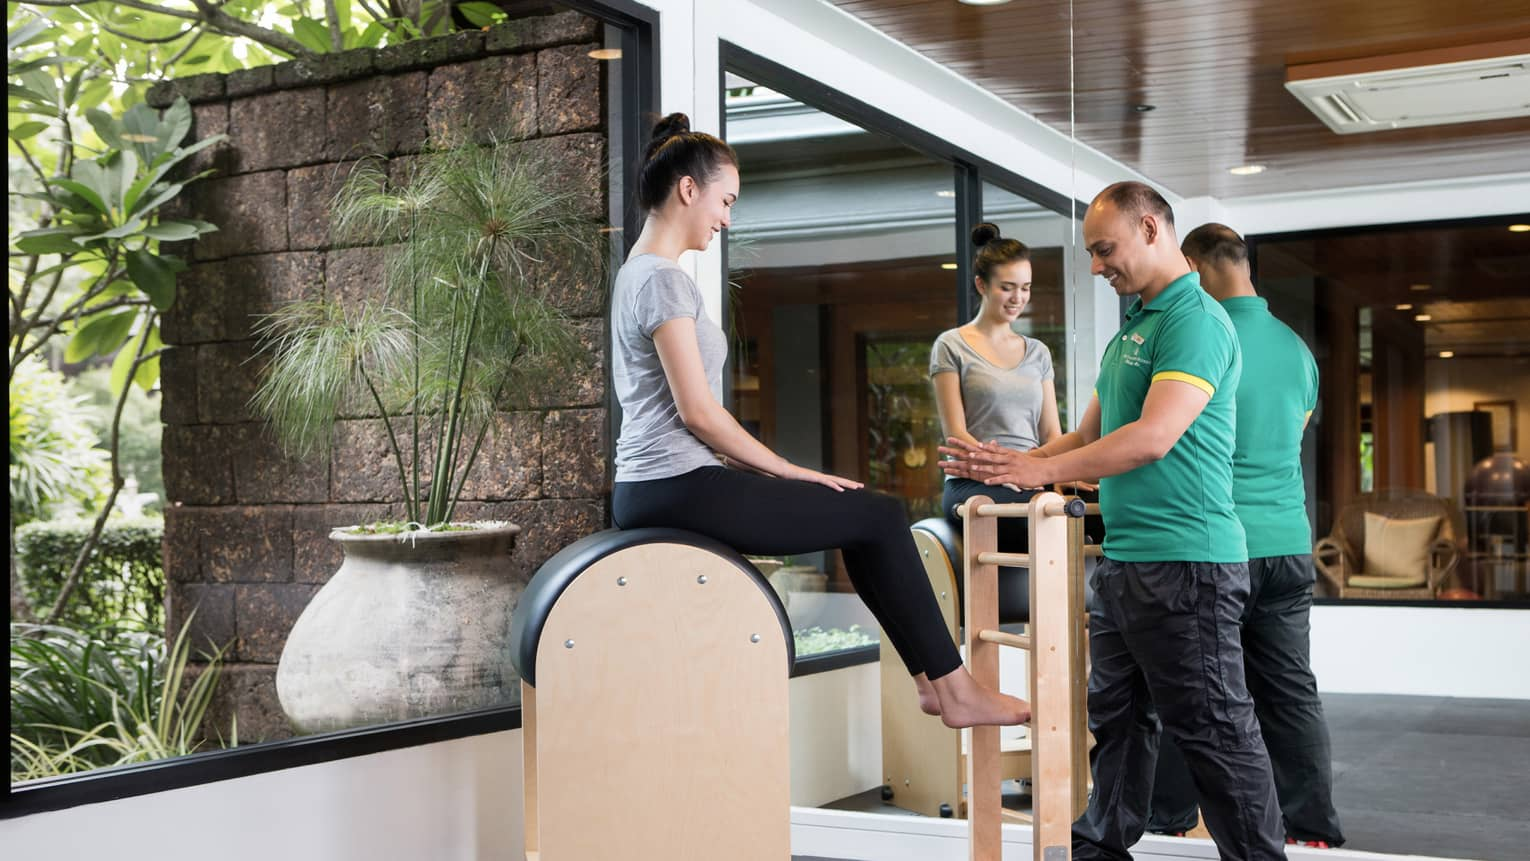 Four Seasons trainer assists woman balancing on pilates beam in Fitness Centre